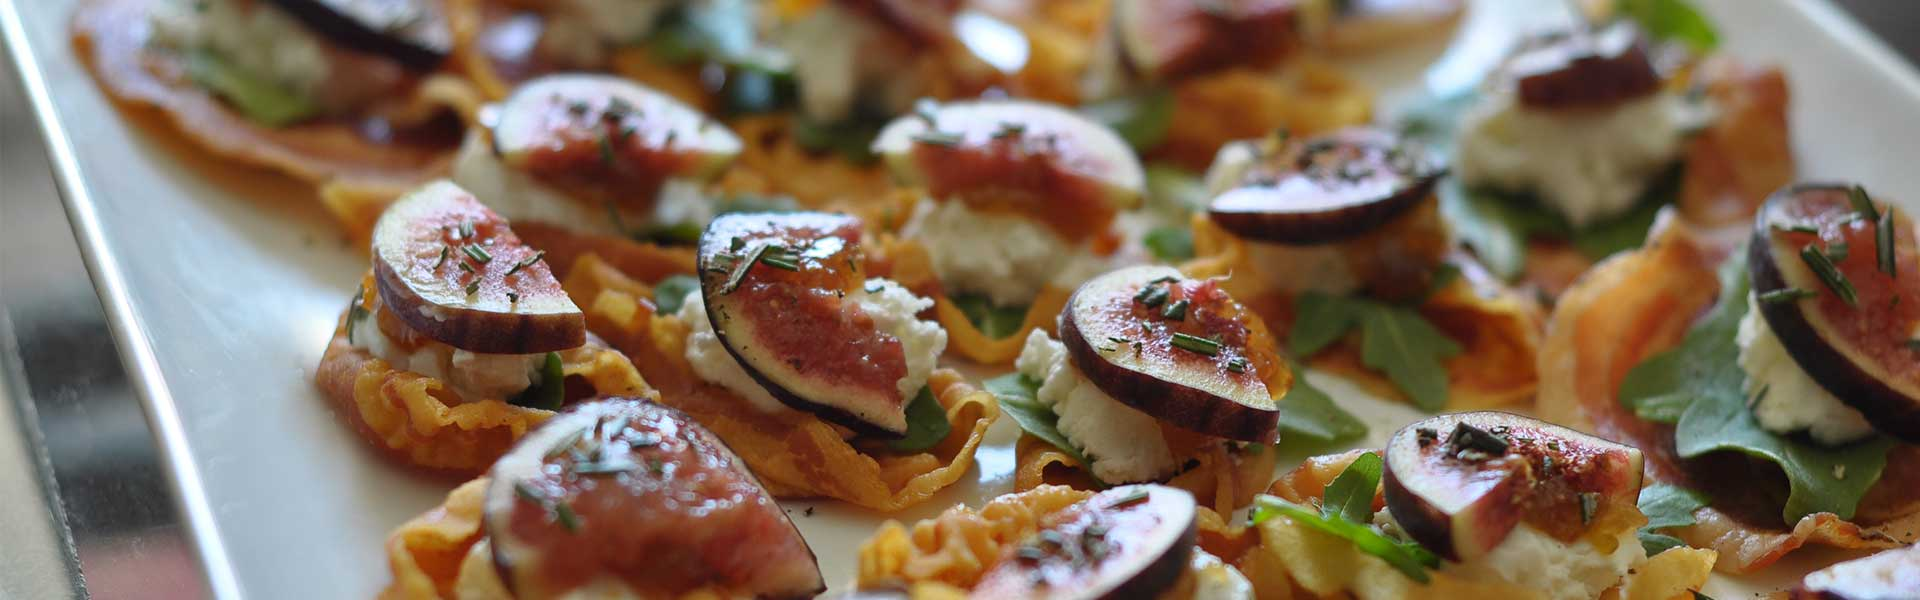 Catered appetizer with fig panchetta crips